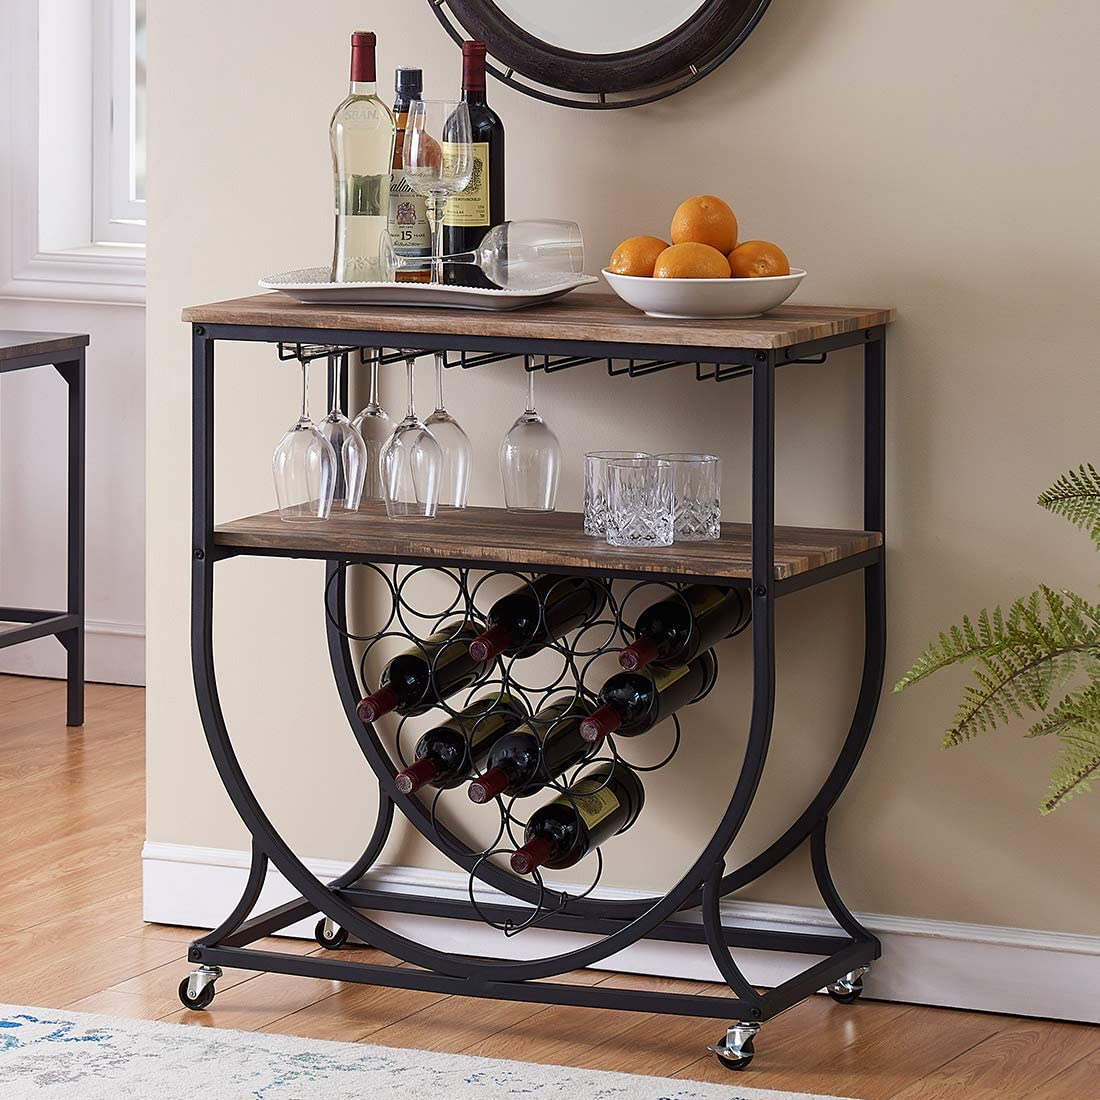 O K FURNITURE Industrial Bar Cart on Wheels for Home, Wine Rack Cart with Glass Holder, Vintage Brown